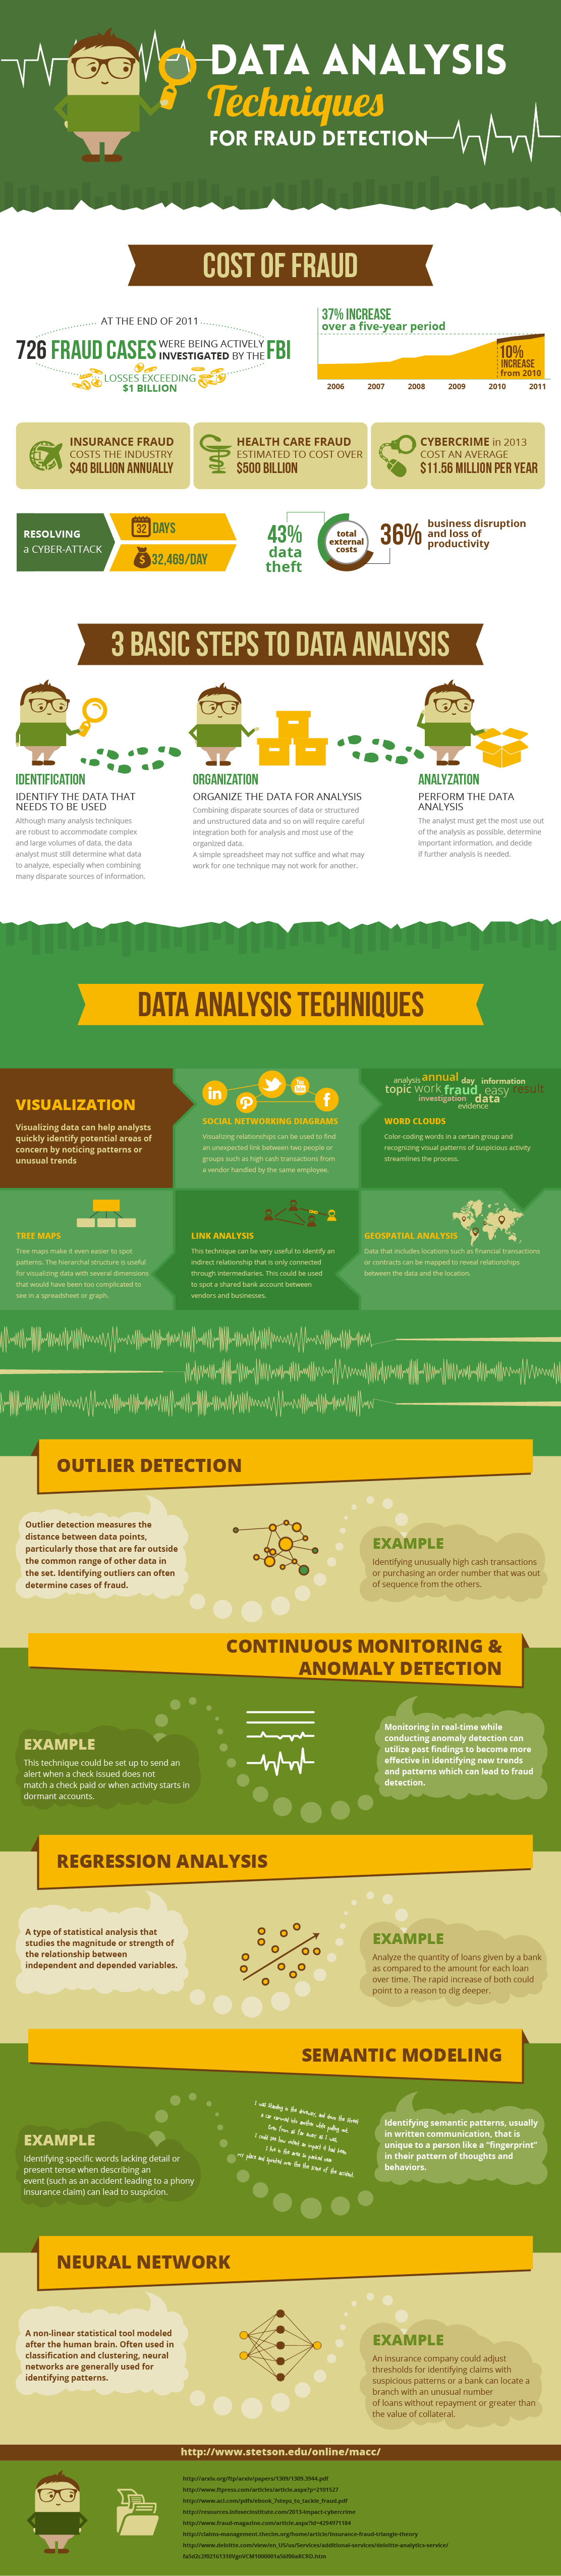 How To Detect Fraud Using Data Analysis Infographic